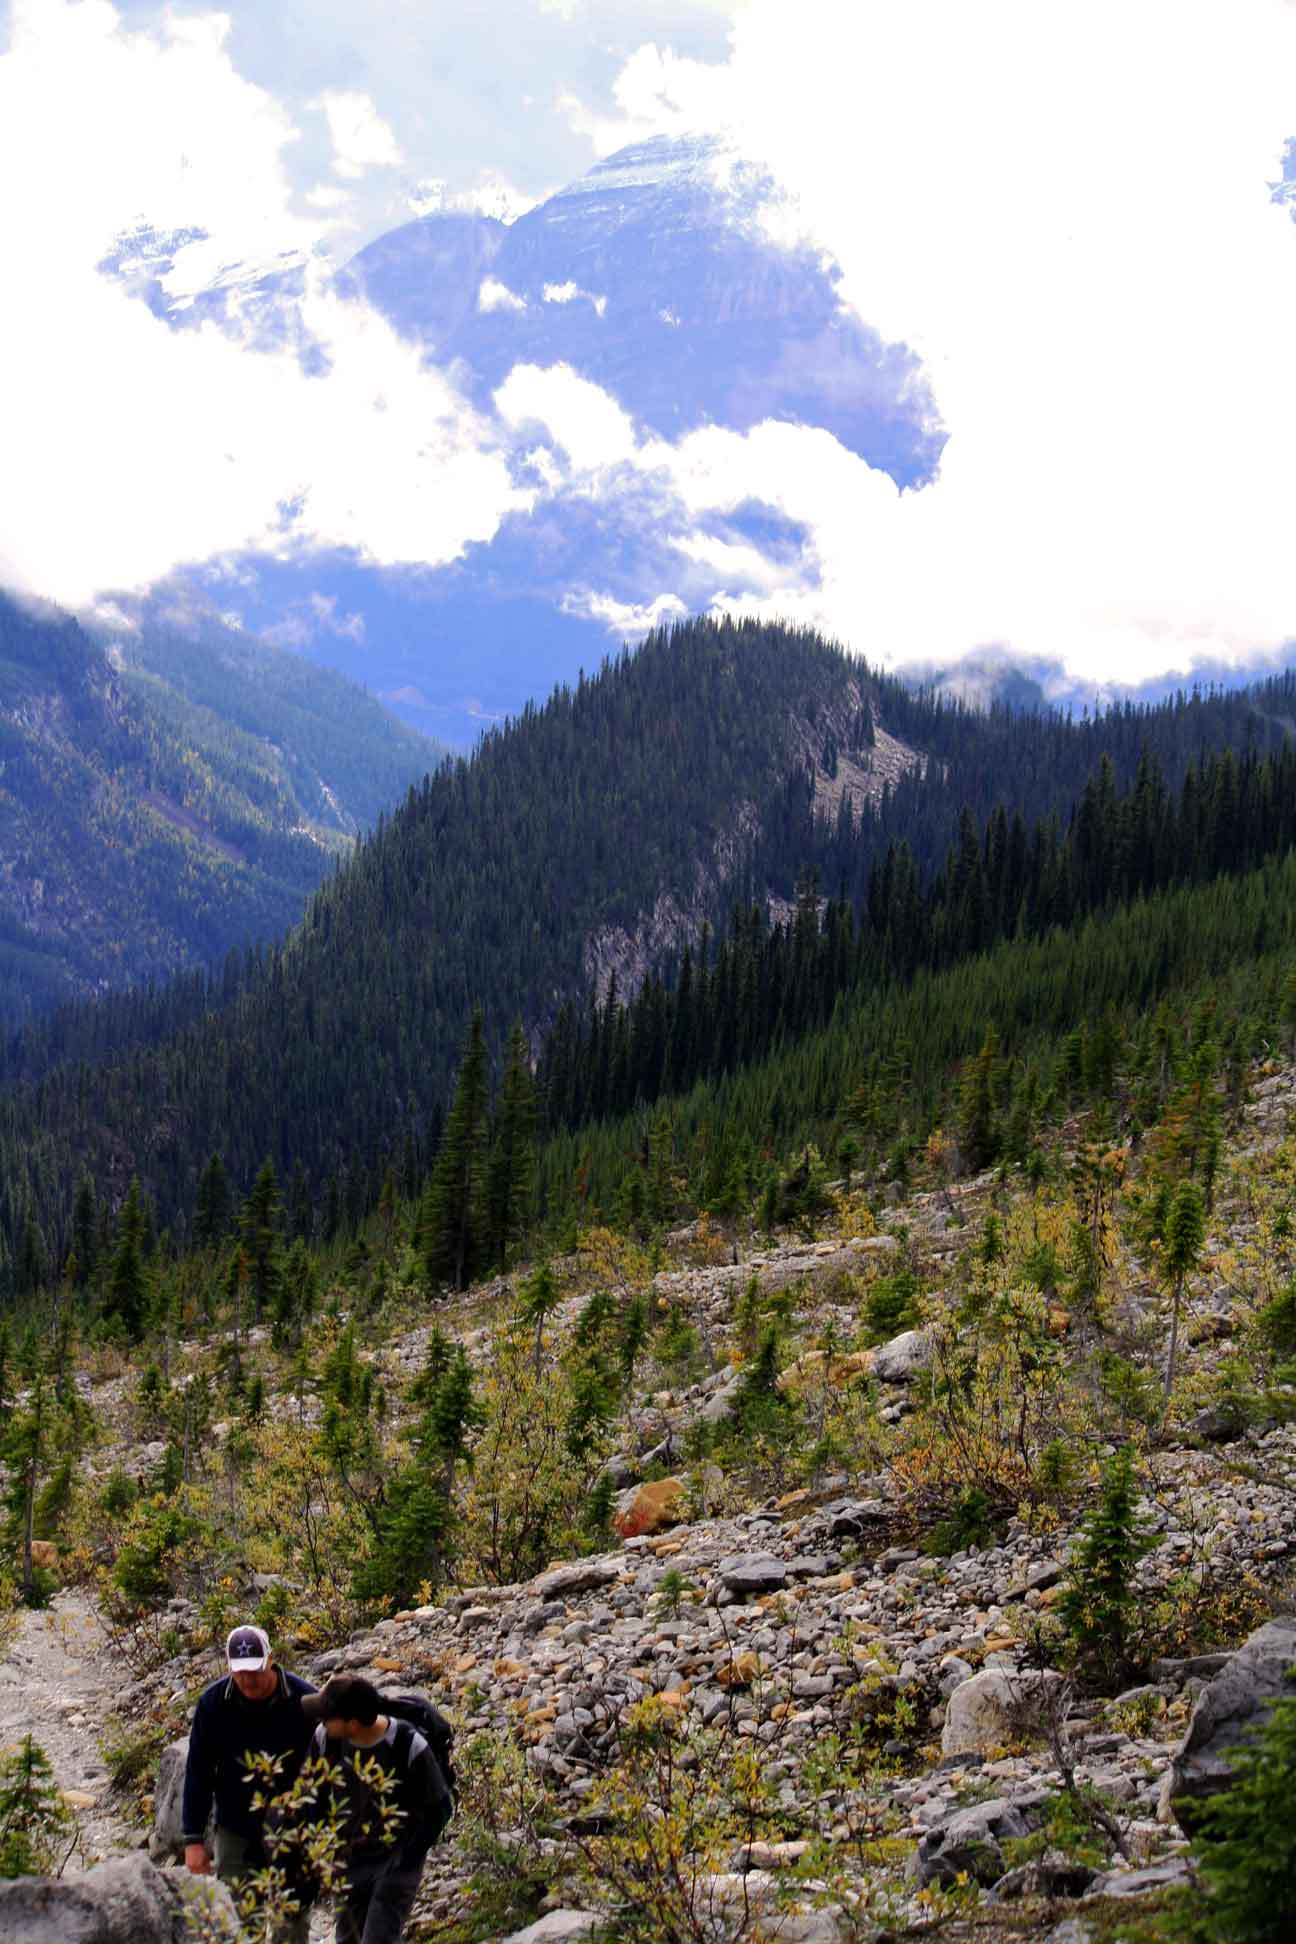 scenery on a guided hike with self propelled adventures